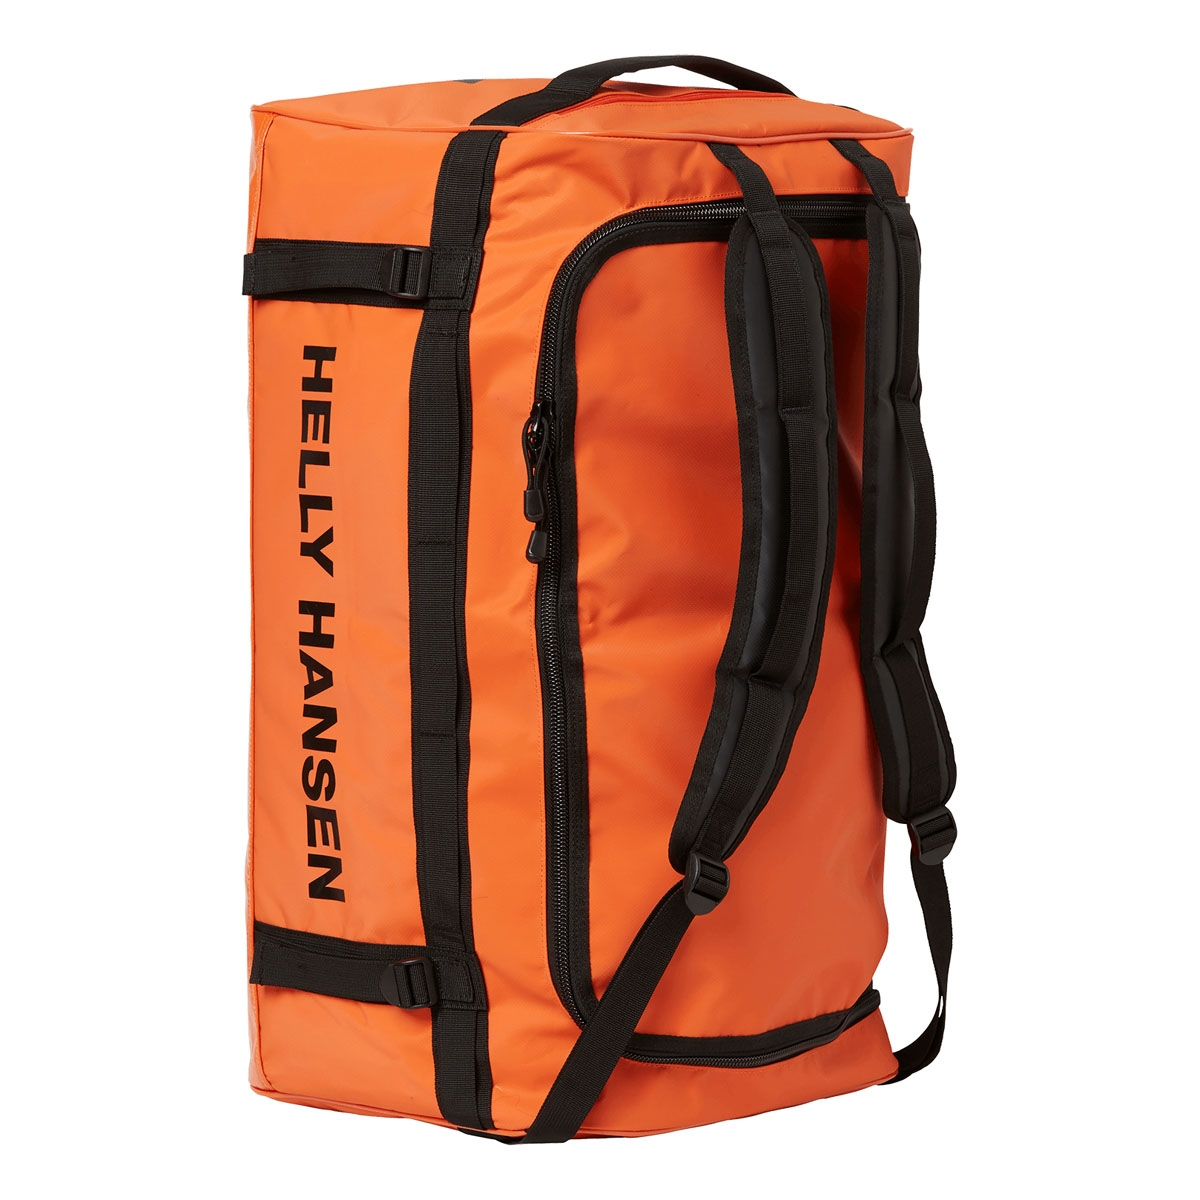 ... Image of Helly Hansen New Classic Duffel Bag - M - Spray Orange ... 9cf9a65d3f